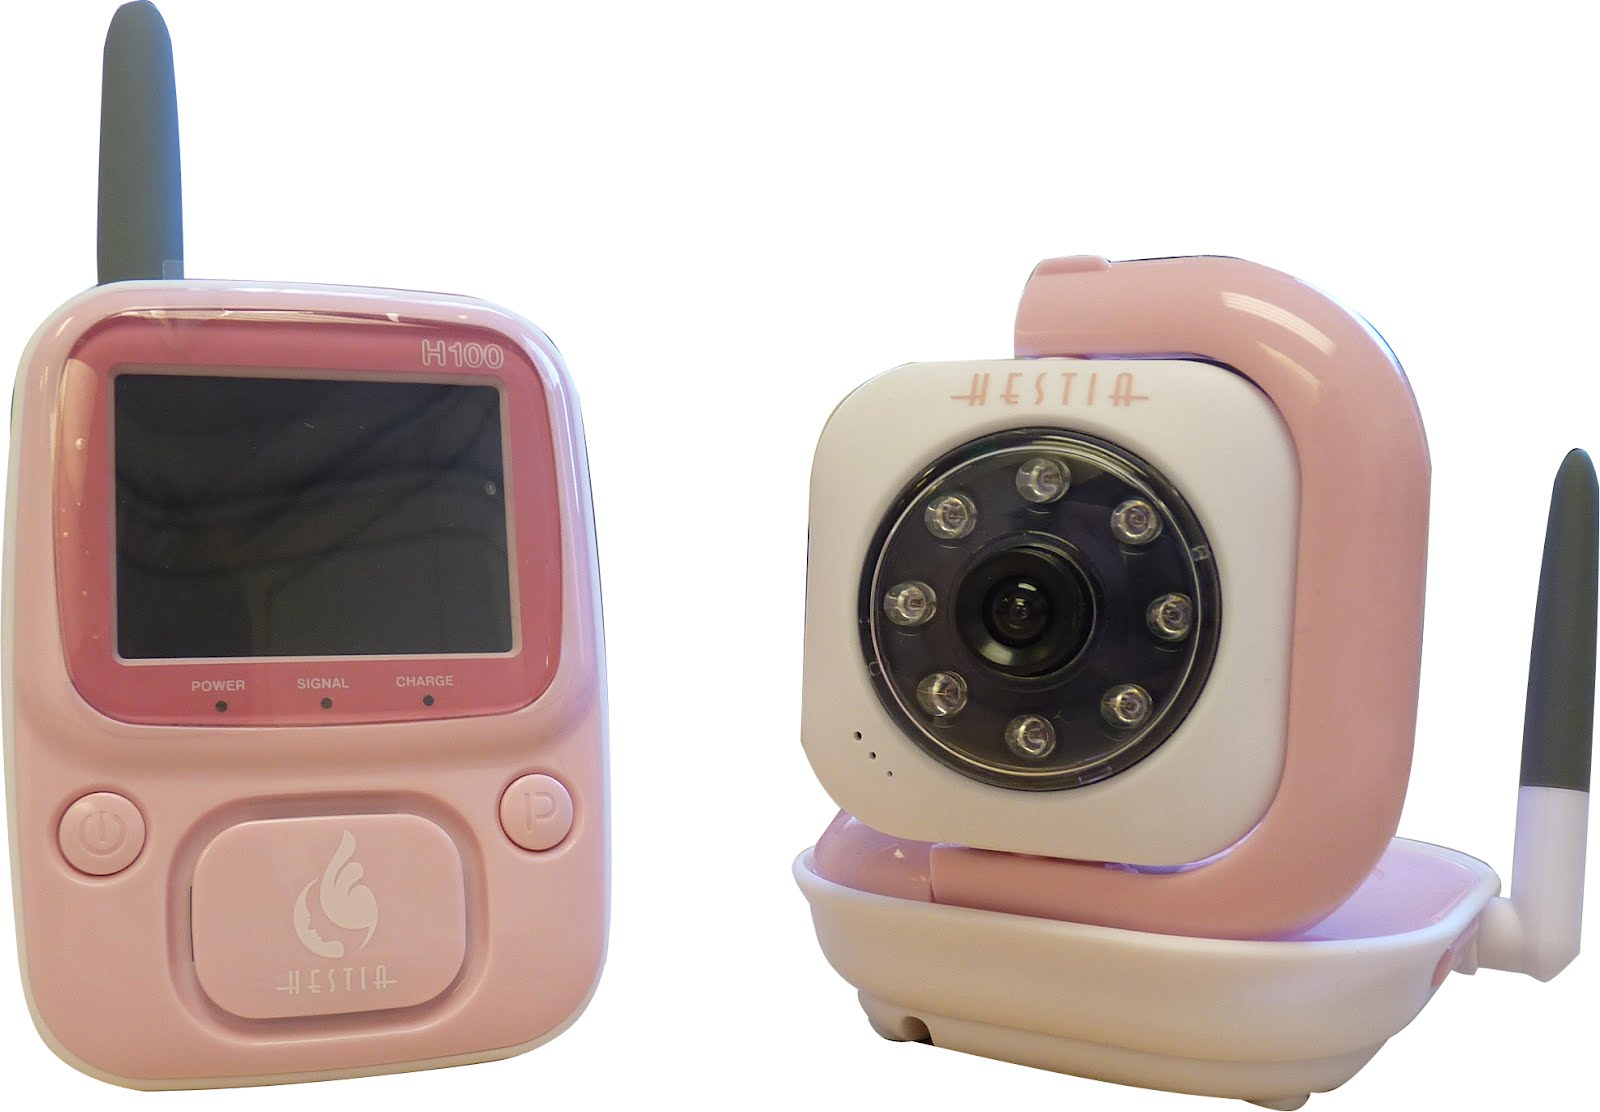 mellow mummy hestia h100 wireless video baby monitor review taking life as it comes. Black Bedroom Furniture Sets. Home Design Ideas